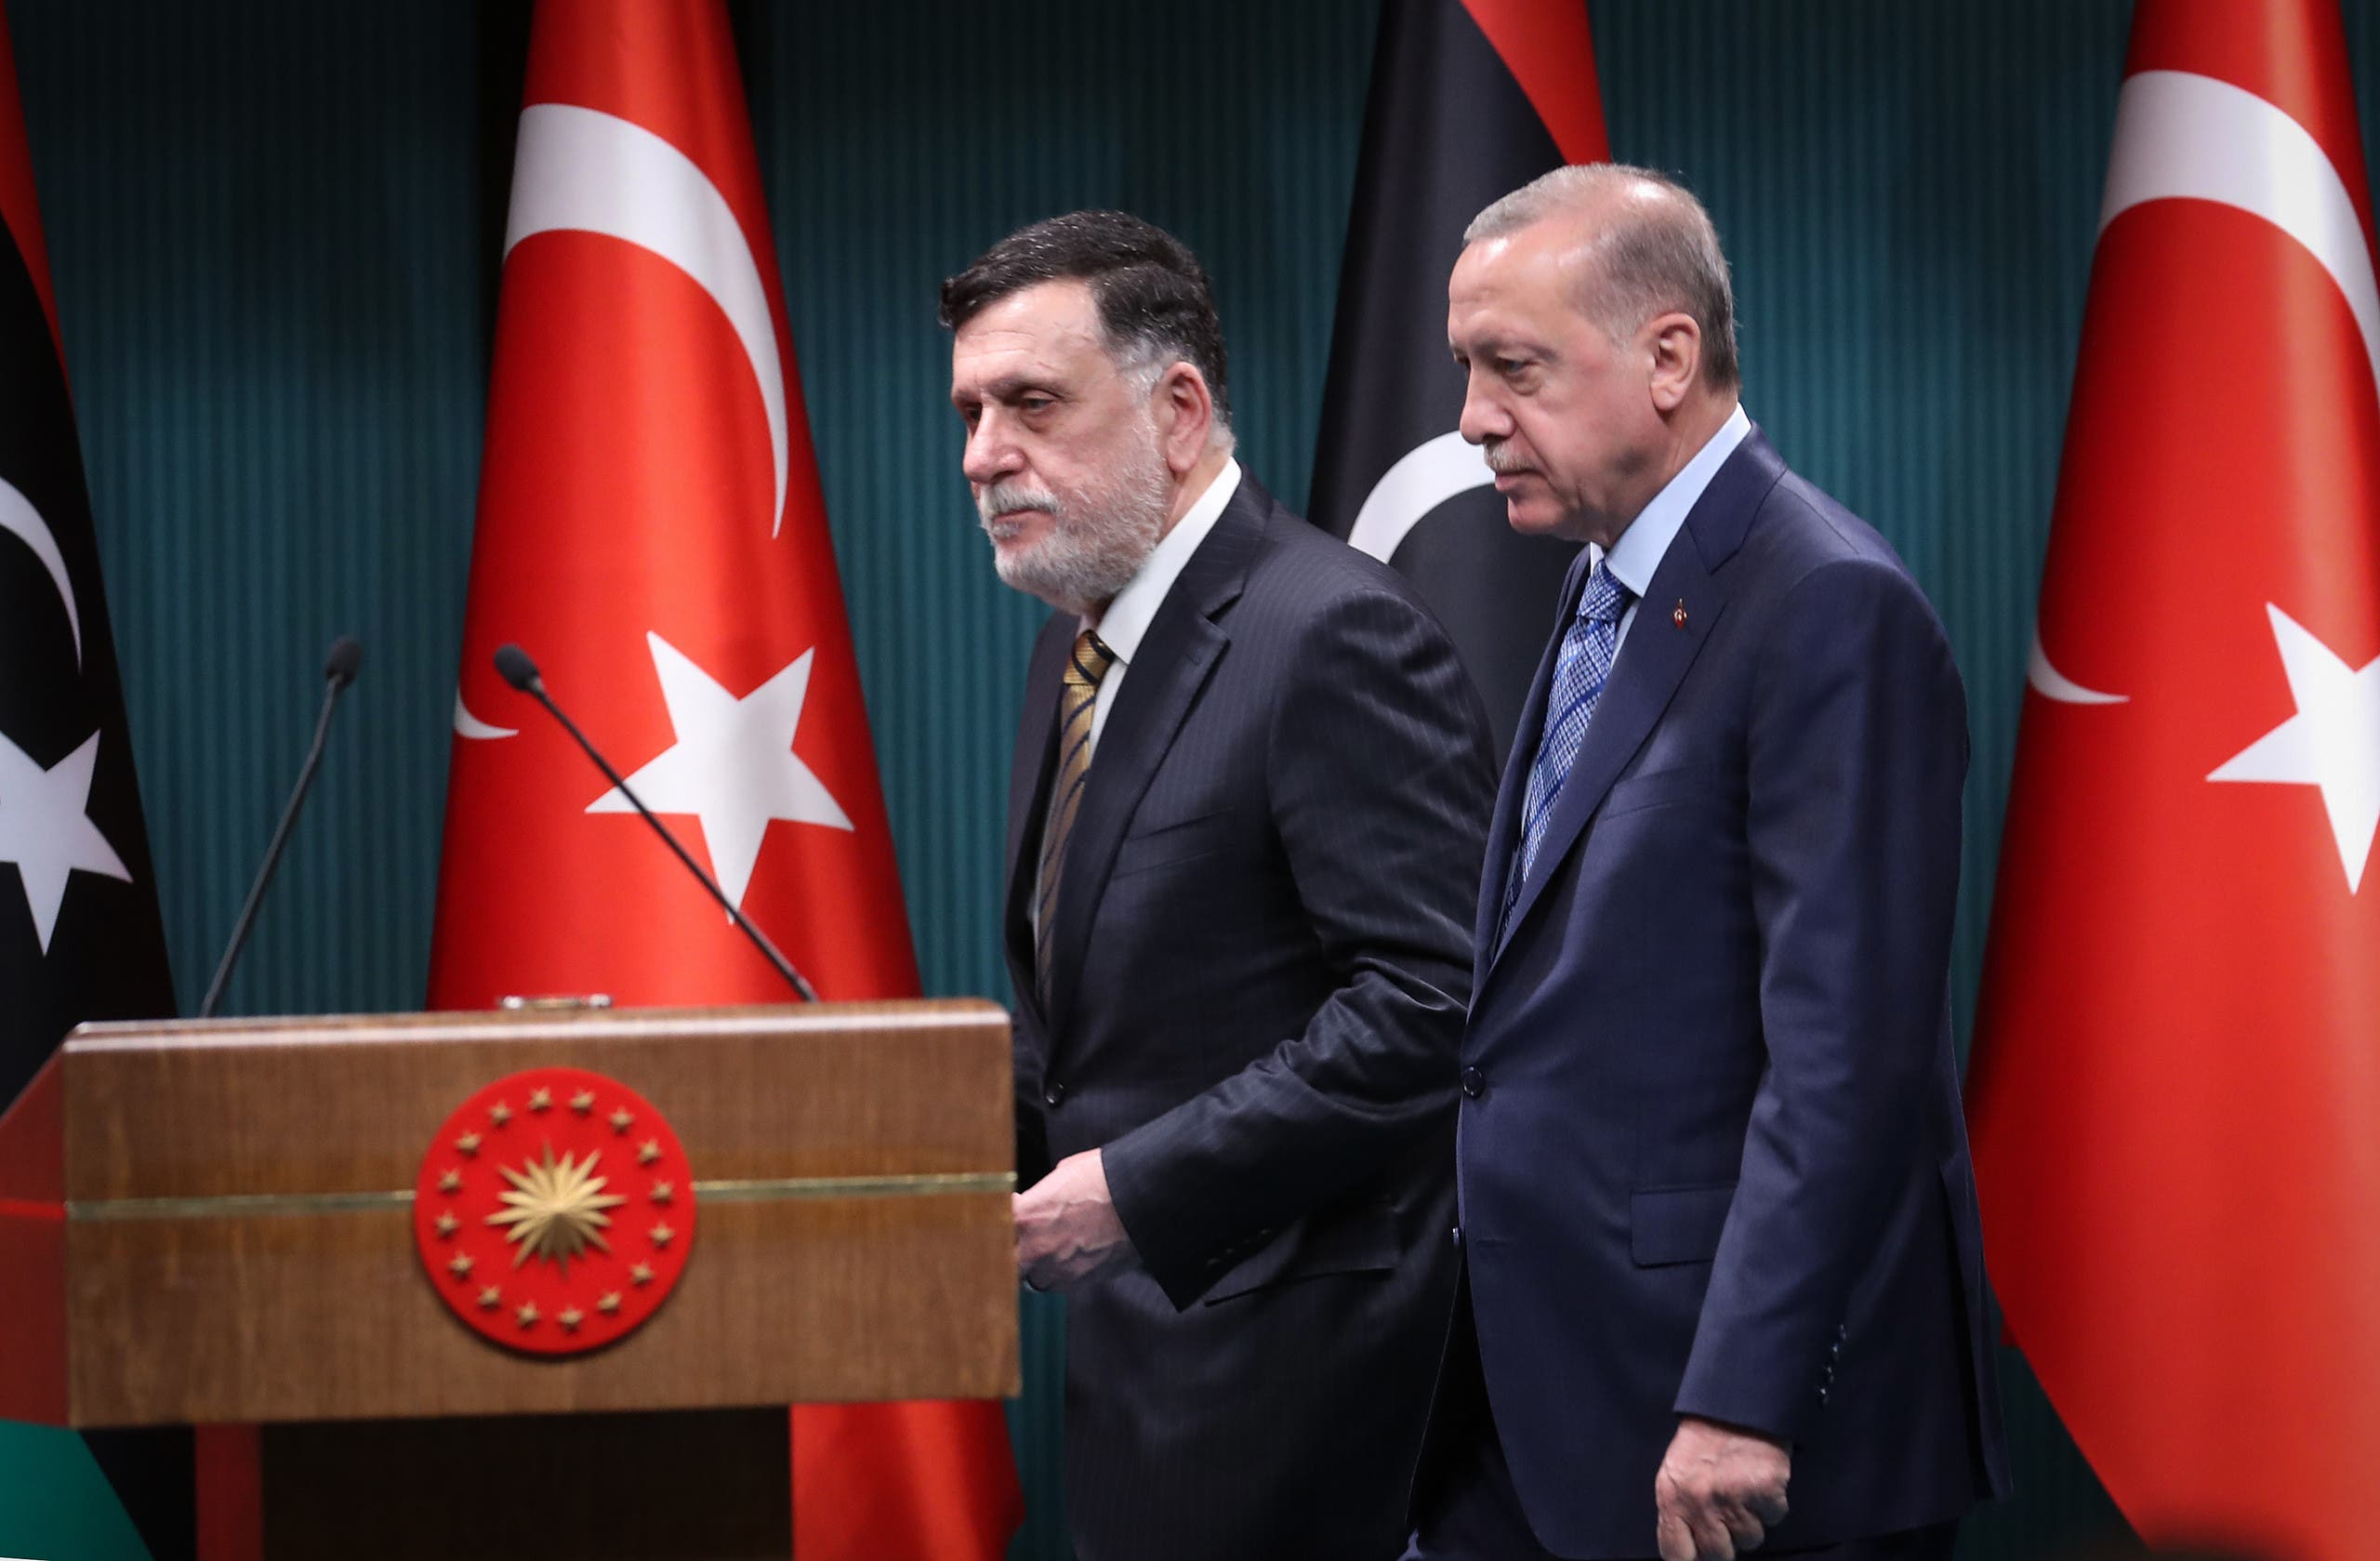 Turkish President Recep Tayyip Erdogan (R) and GNA leader Fayez al-Sarraj (L) arrive for a joint press conference in Ankara on June 4, 2020. (AFP)